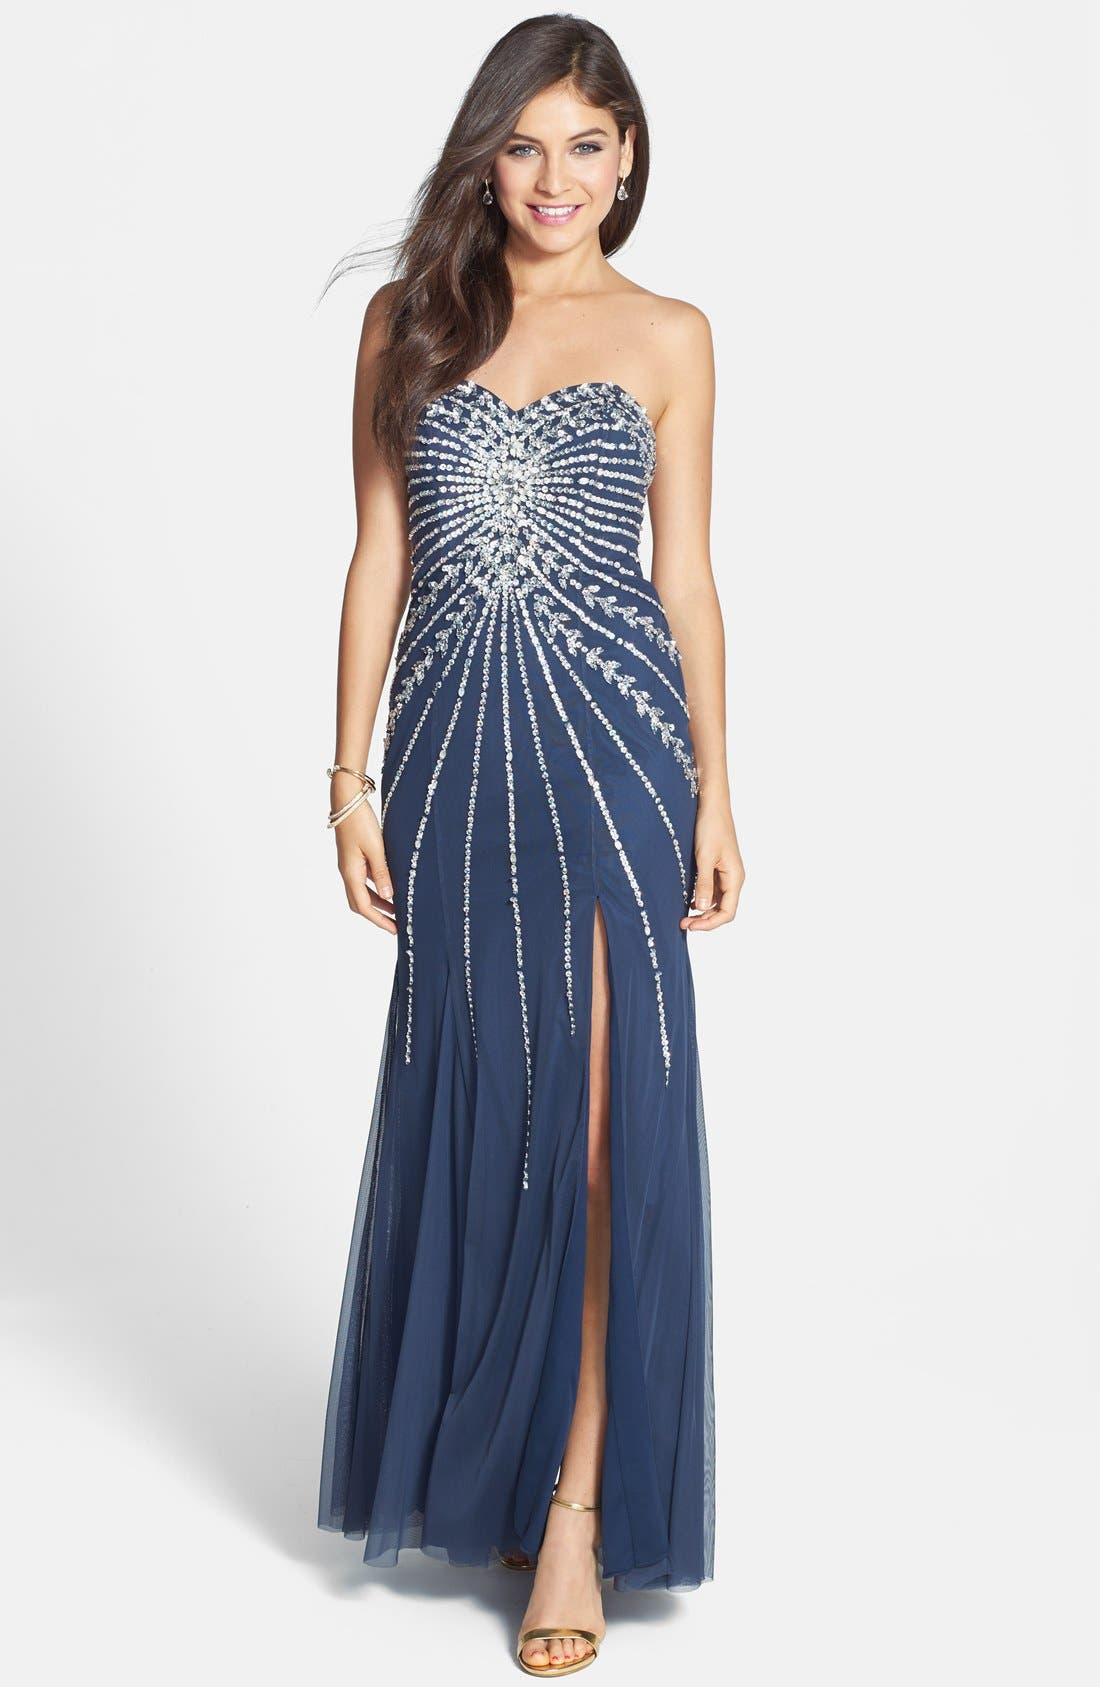 Main Image - Sean Collection Embellished Strapless Mesh Gown